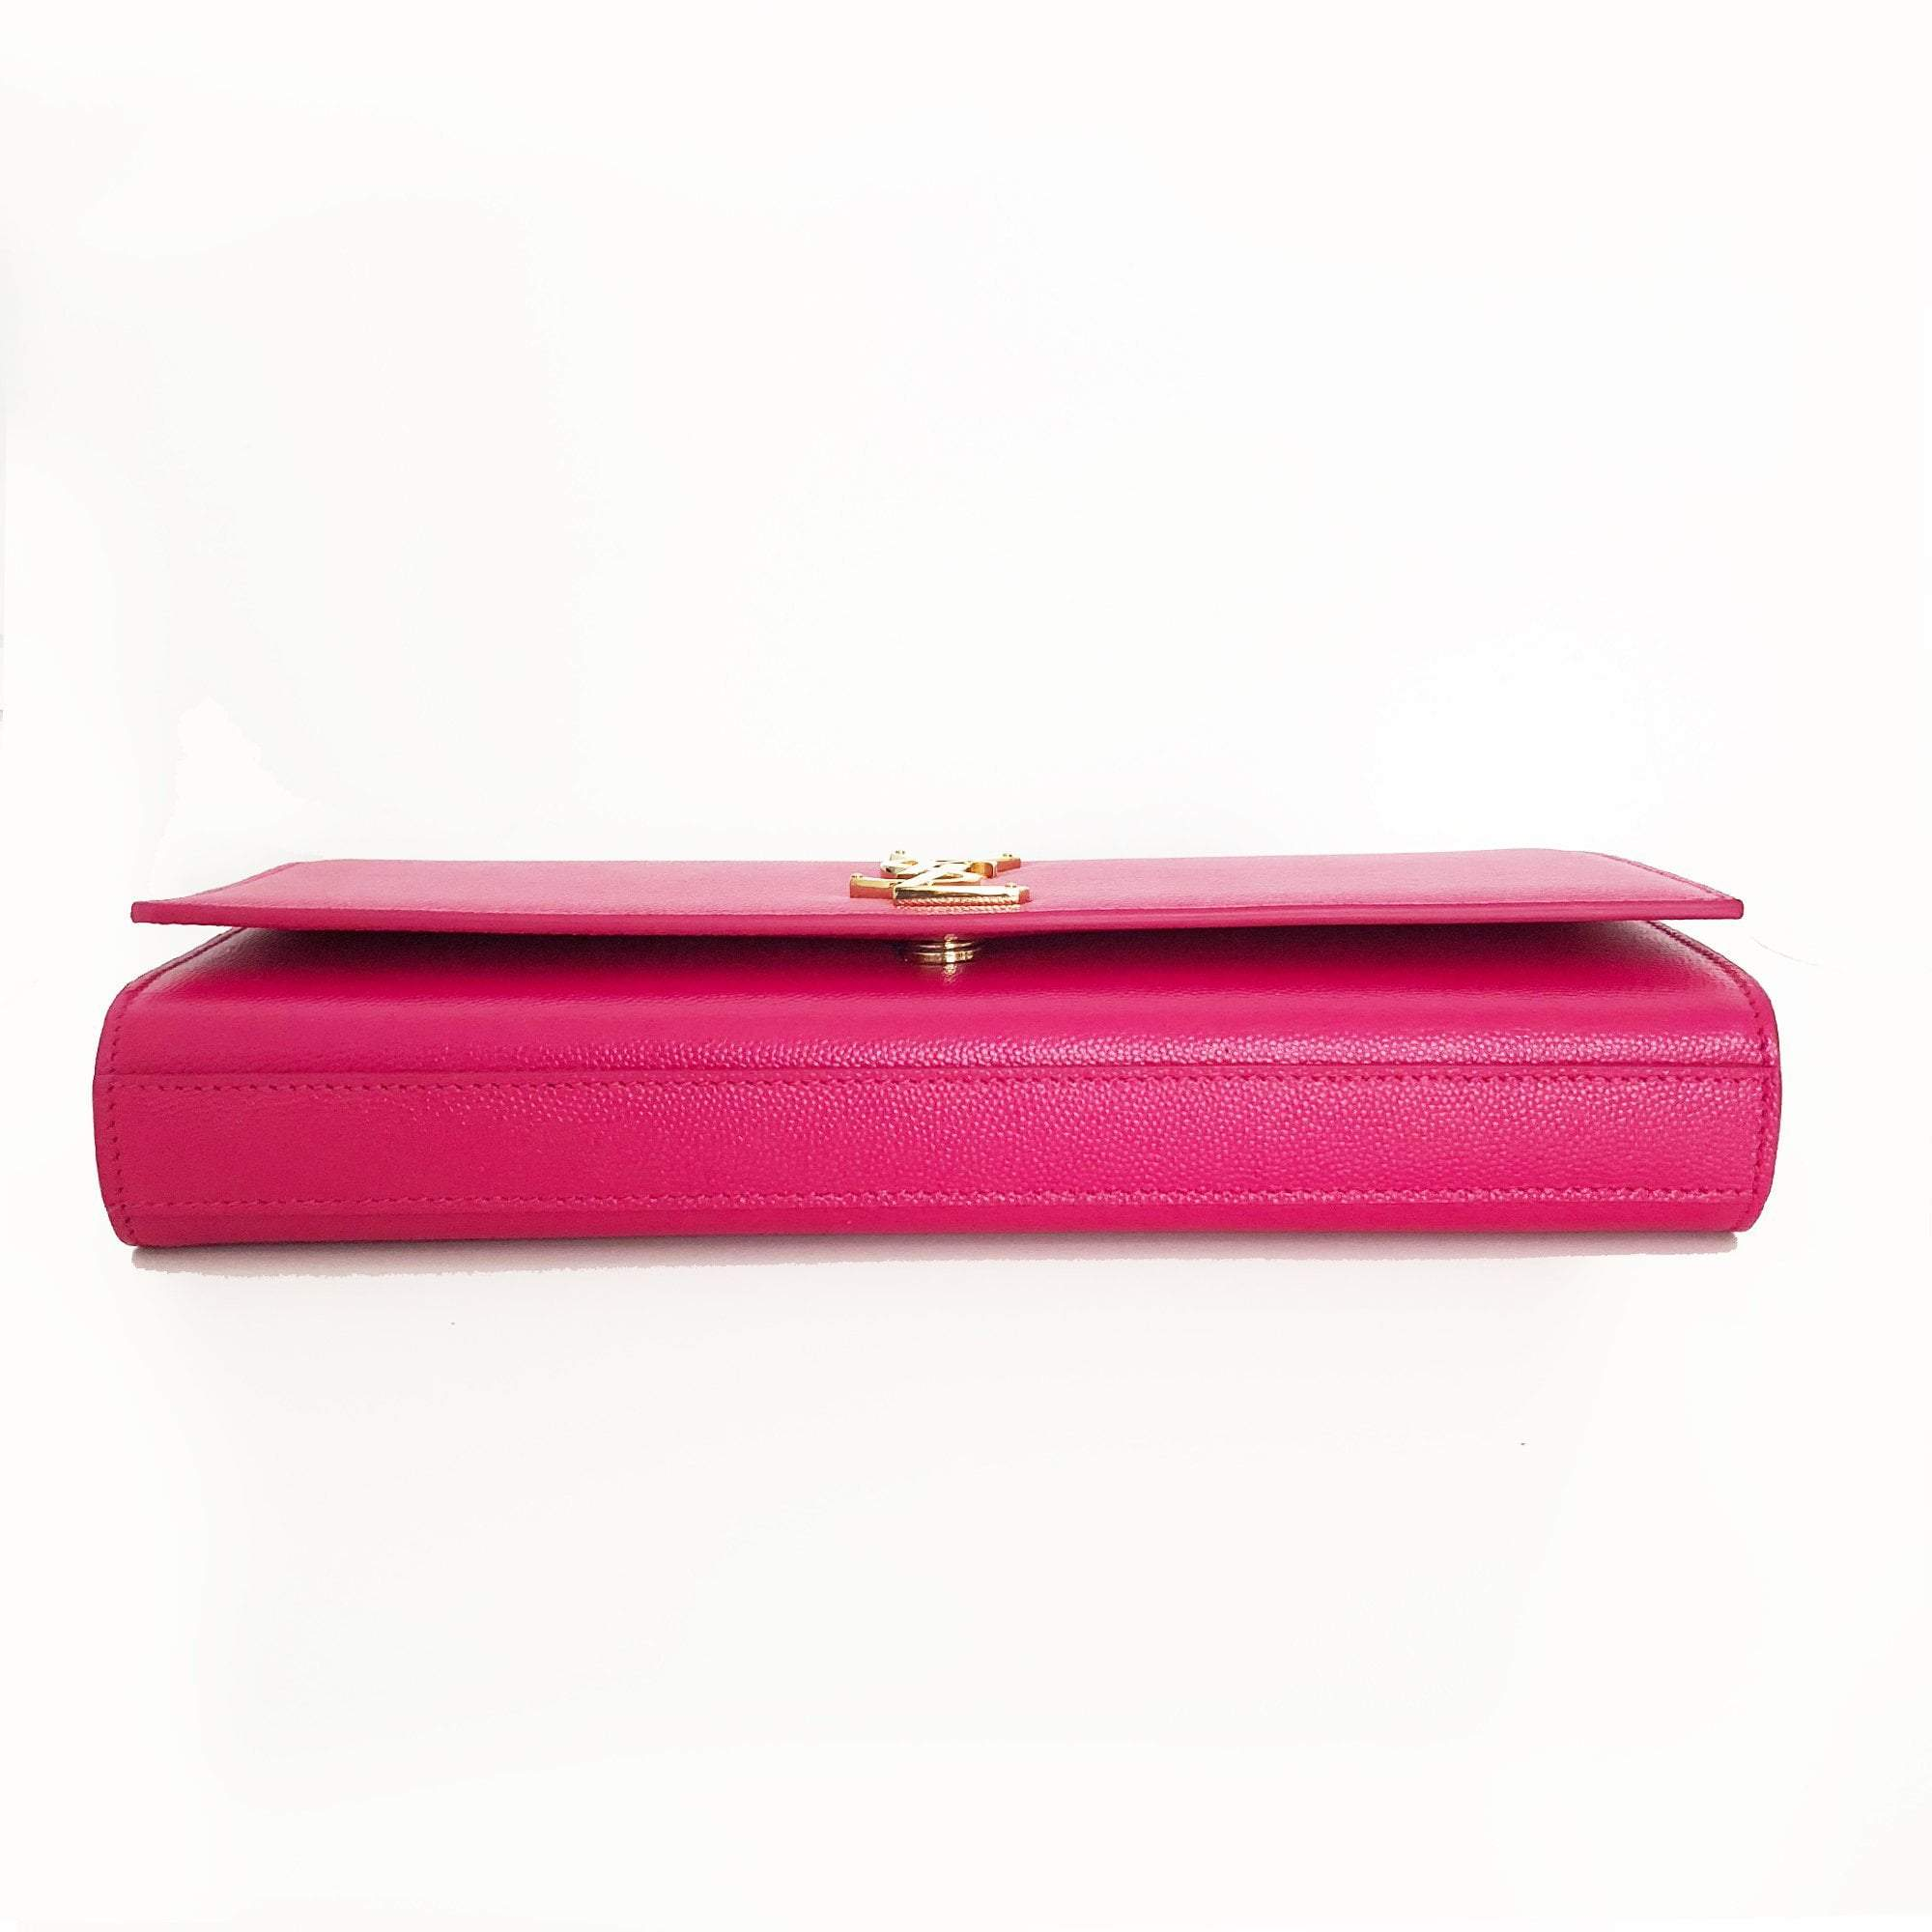 Yves Saint Laurent  Pink Cassandre leather clutch